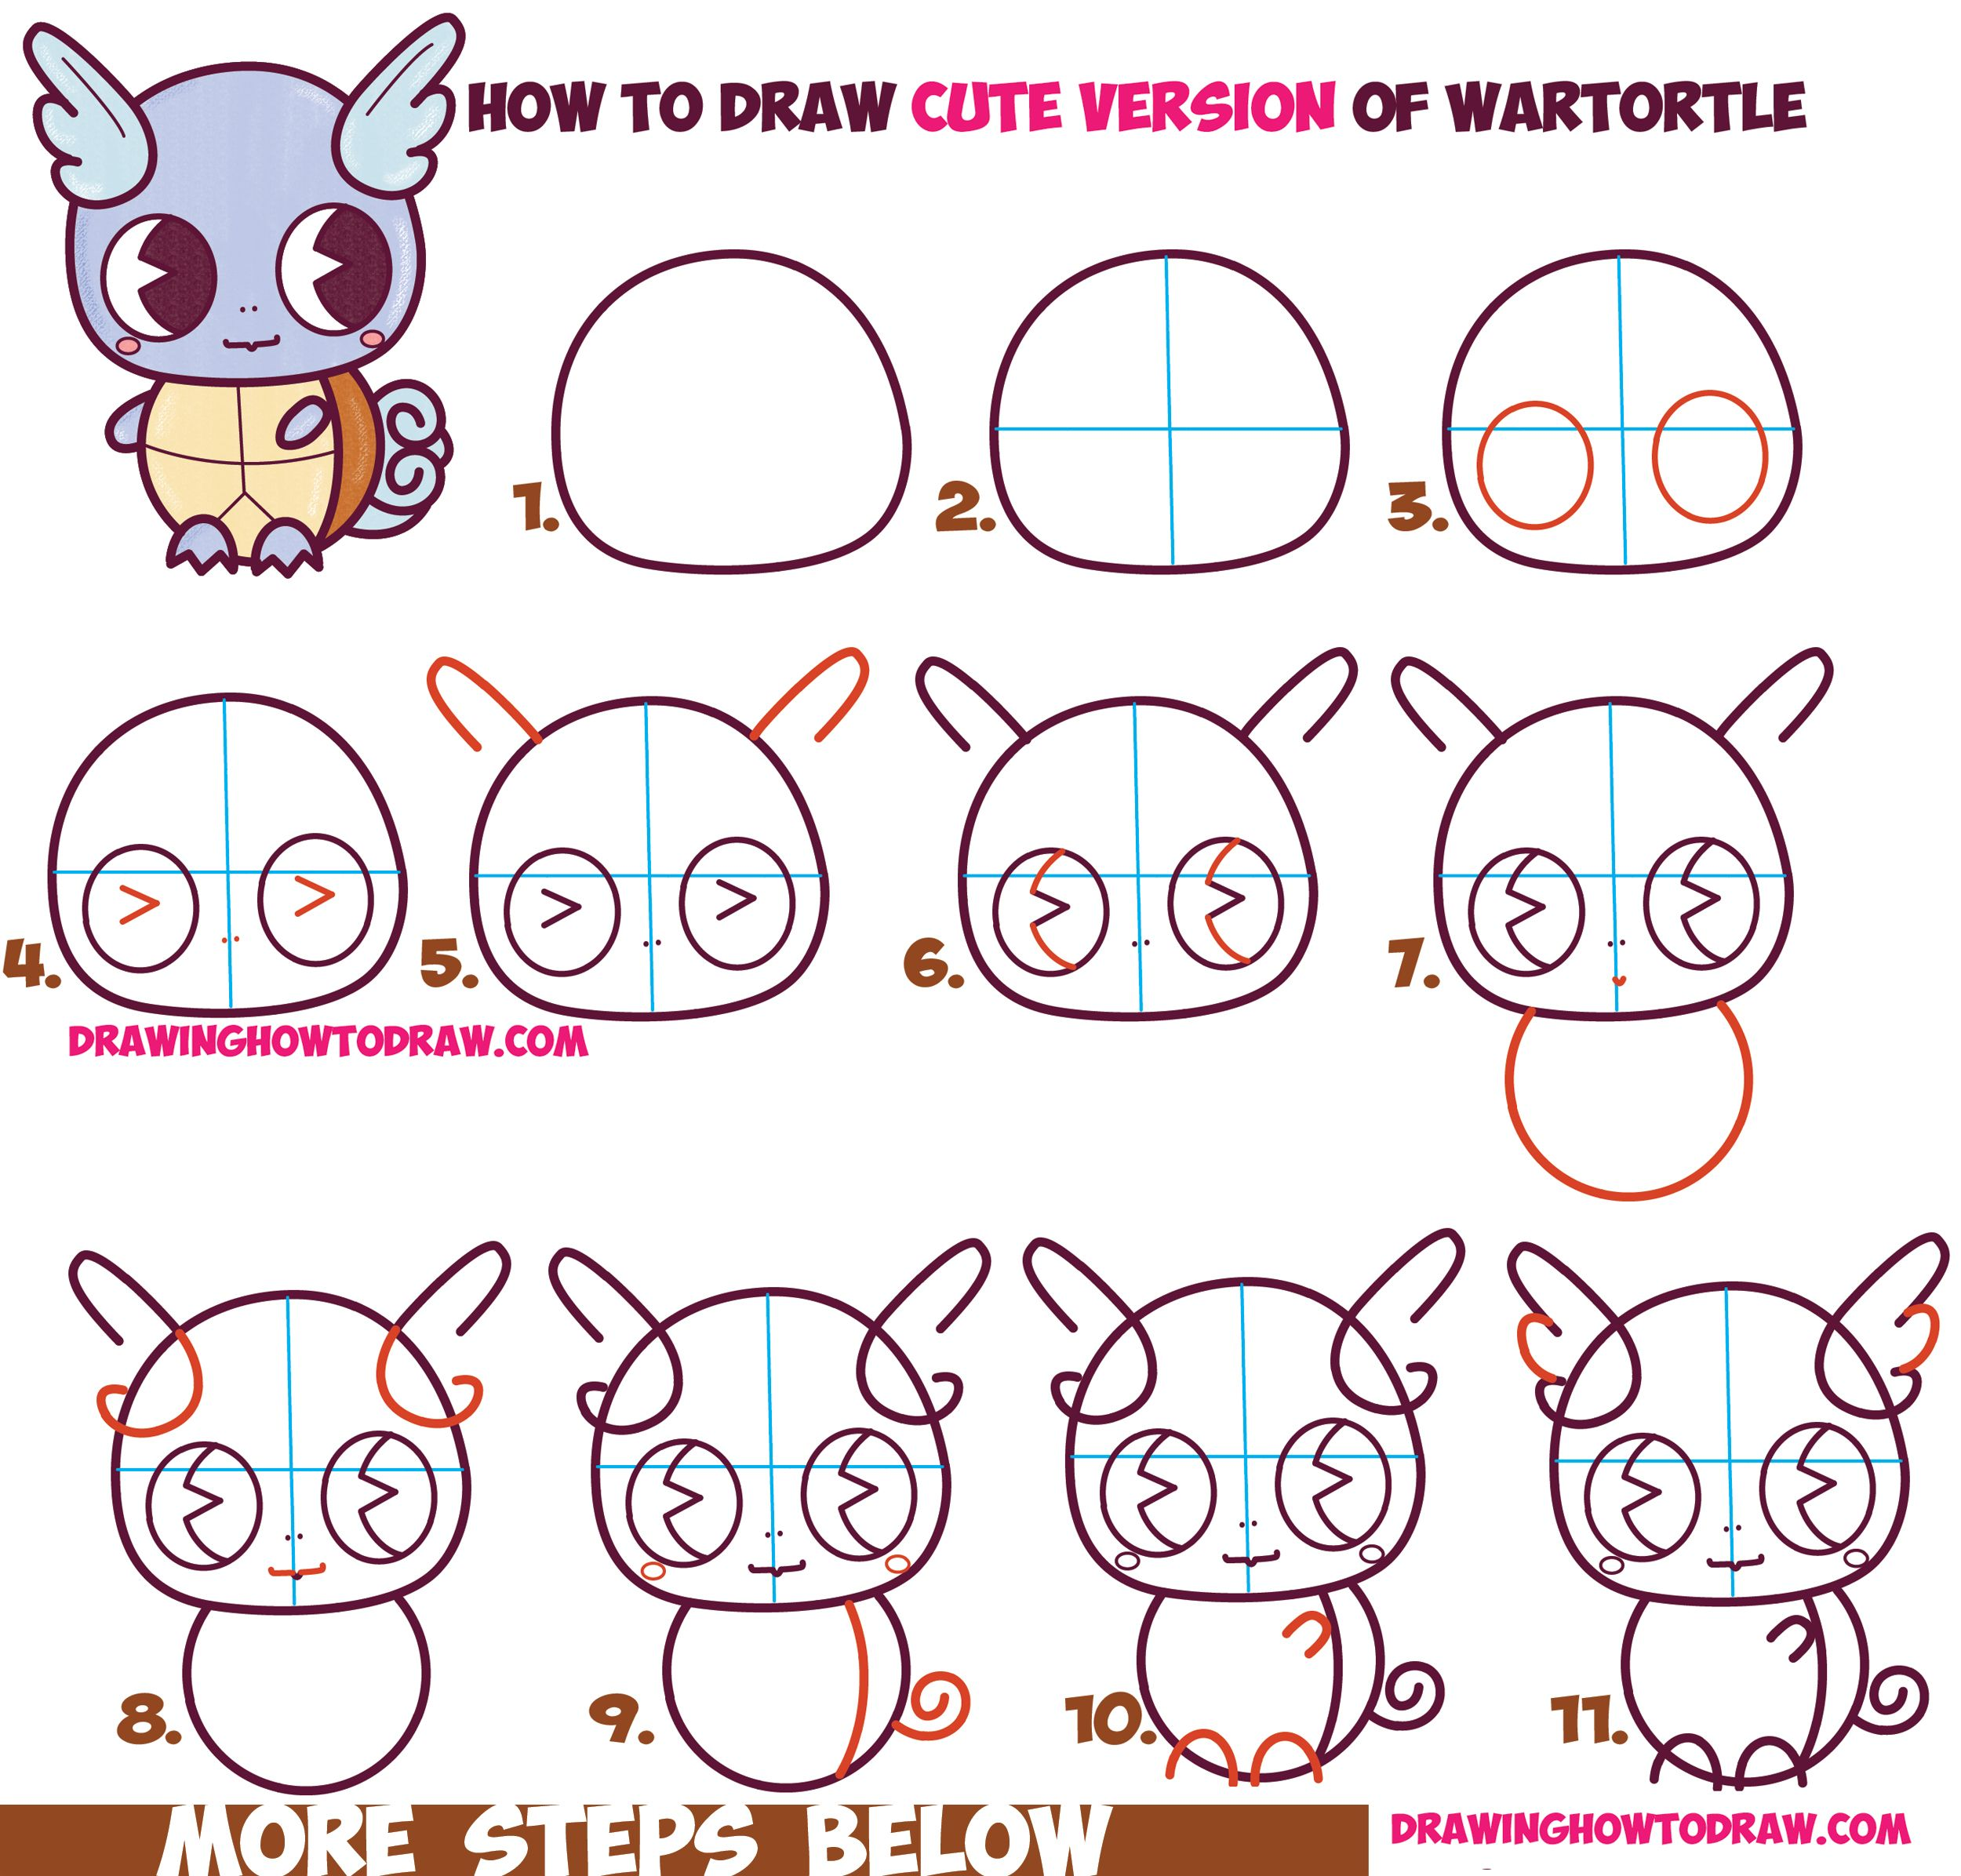 How To Draw Cute Chibi Kawaii Wartortle From Pokemon Easy Step By Step Drawing Tutorial For Beginners How To Draw Step By Step Drawing Tutorials Drawing Tutorials For